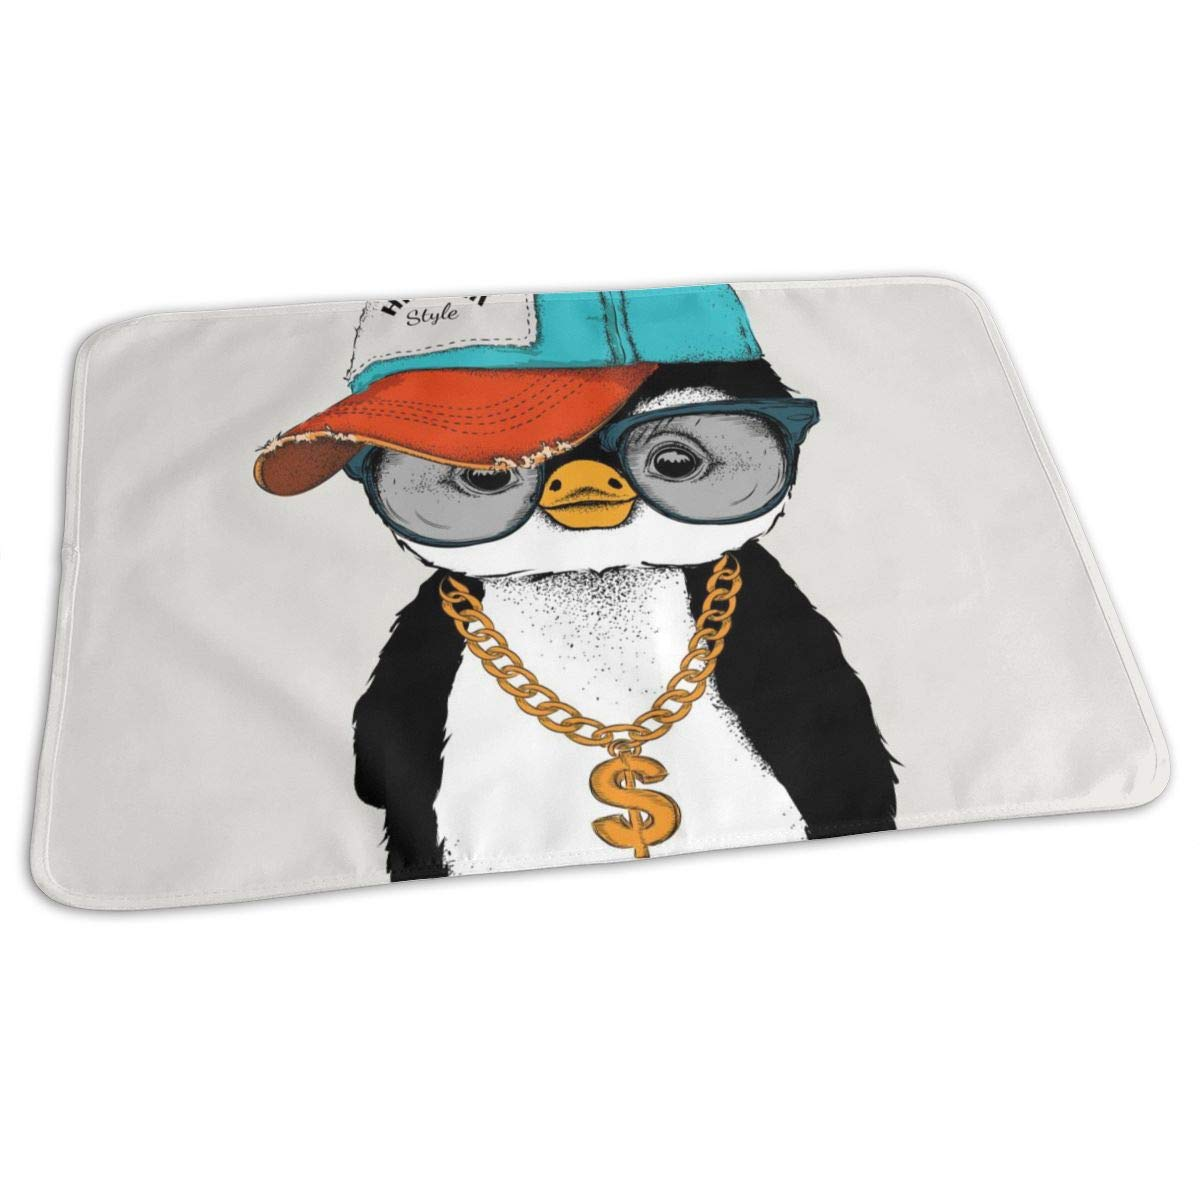 Osvbs Lovely Baby Reusable Waterproof Portable Penguins in Hip Hop Hats Changing Pad Home Travel 27.5''x19.7'' by Osvbs